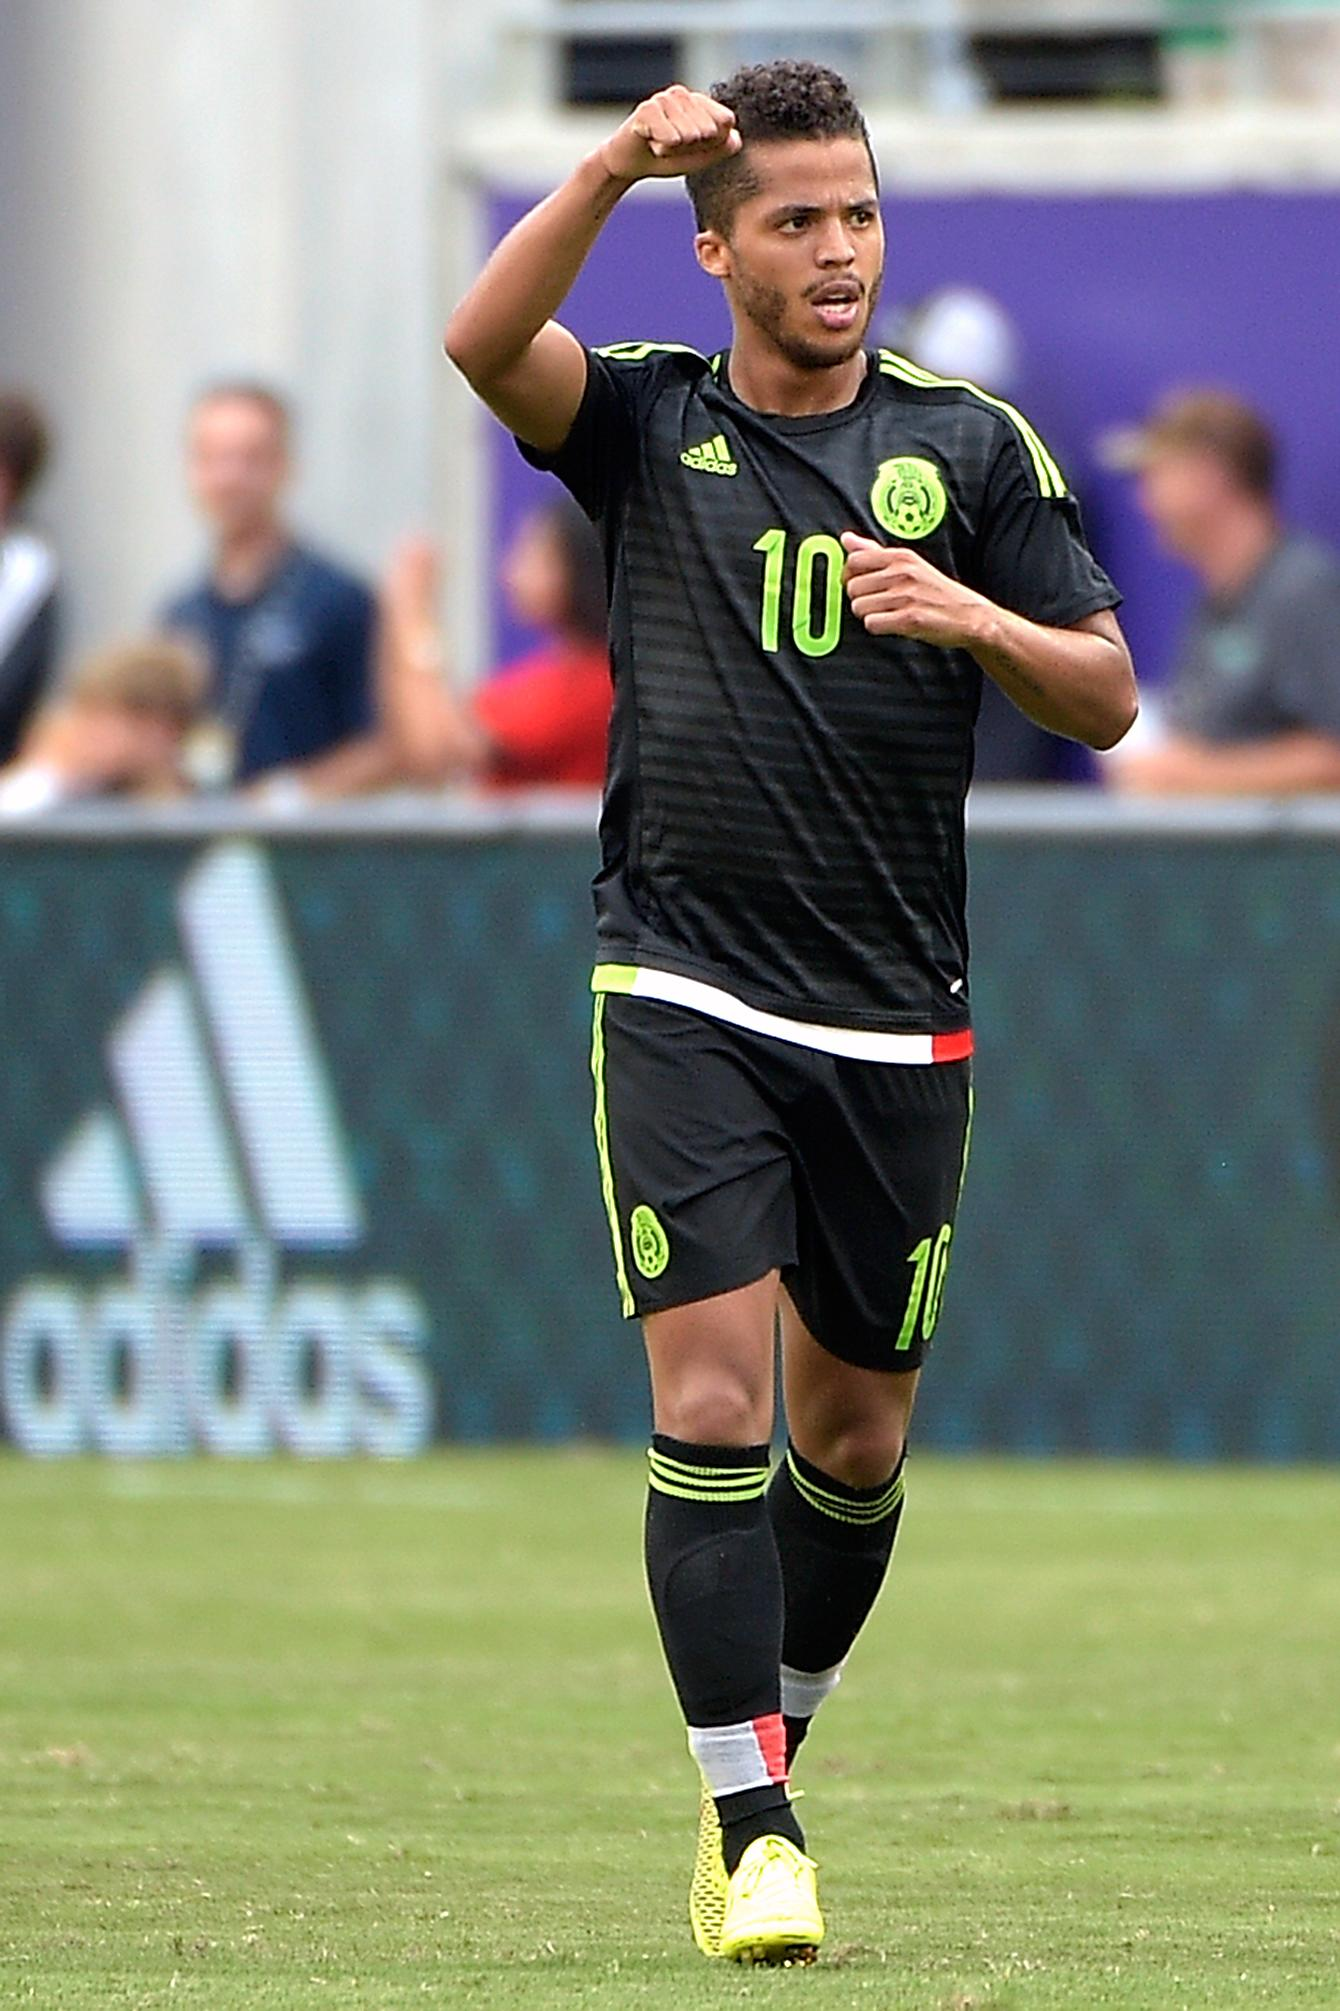 who does giovani dos santos play for